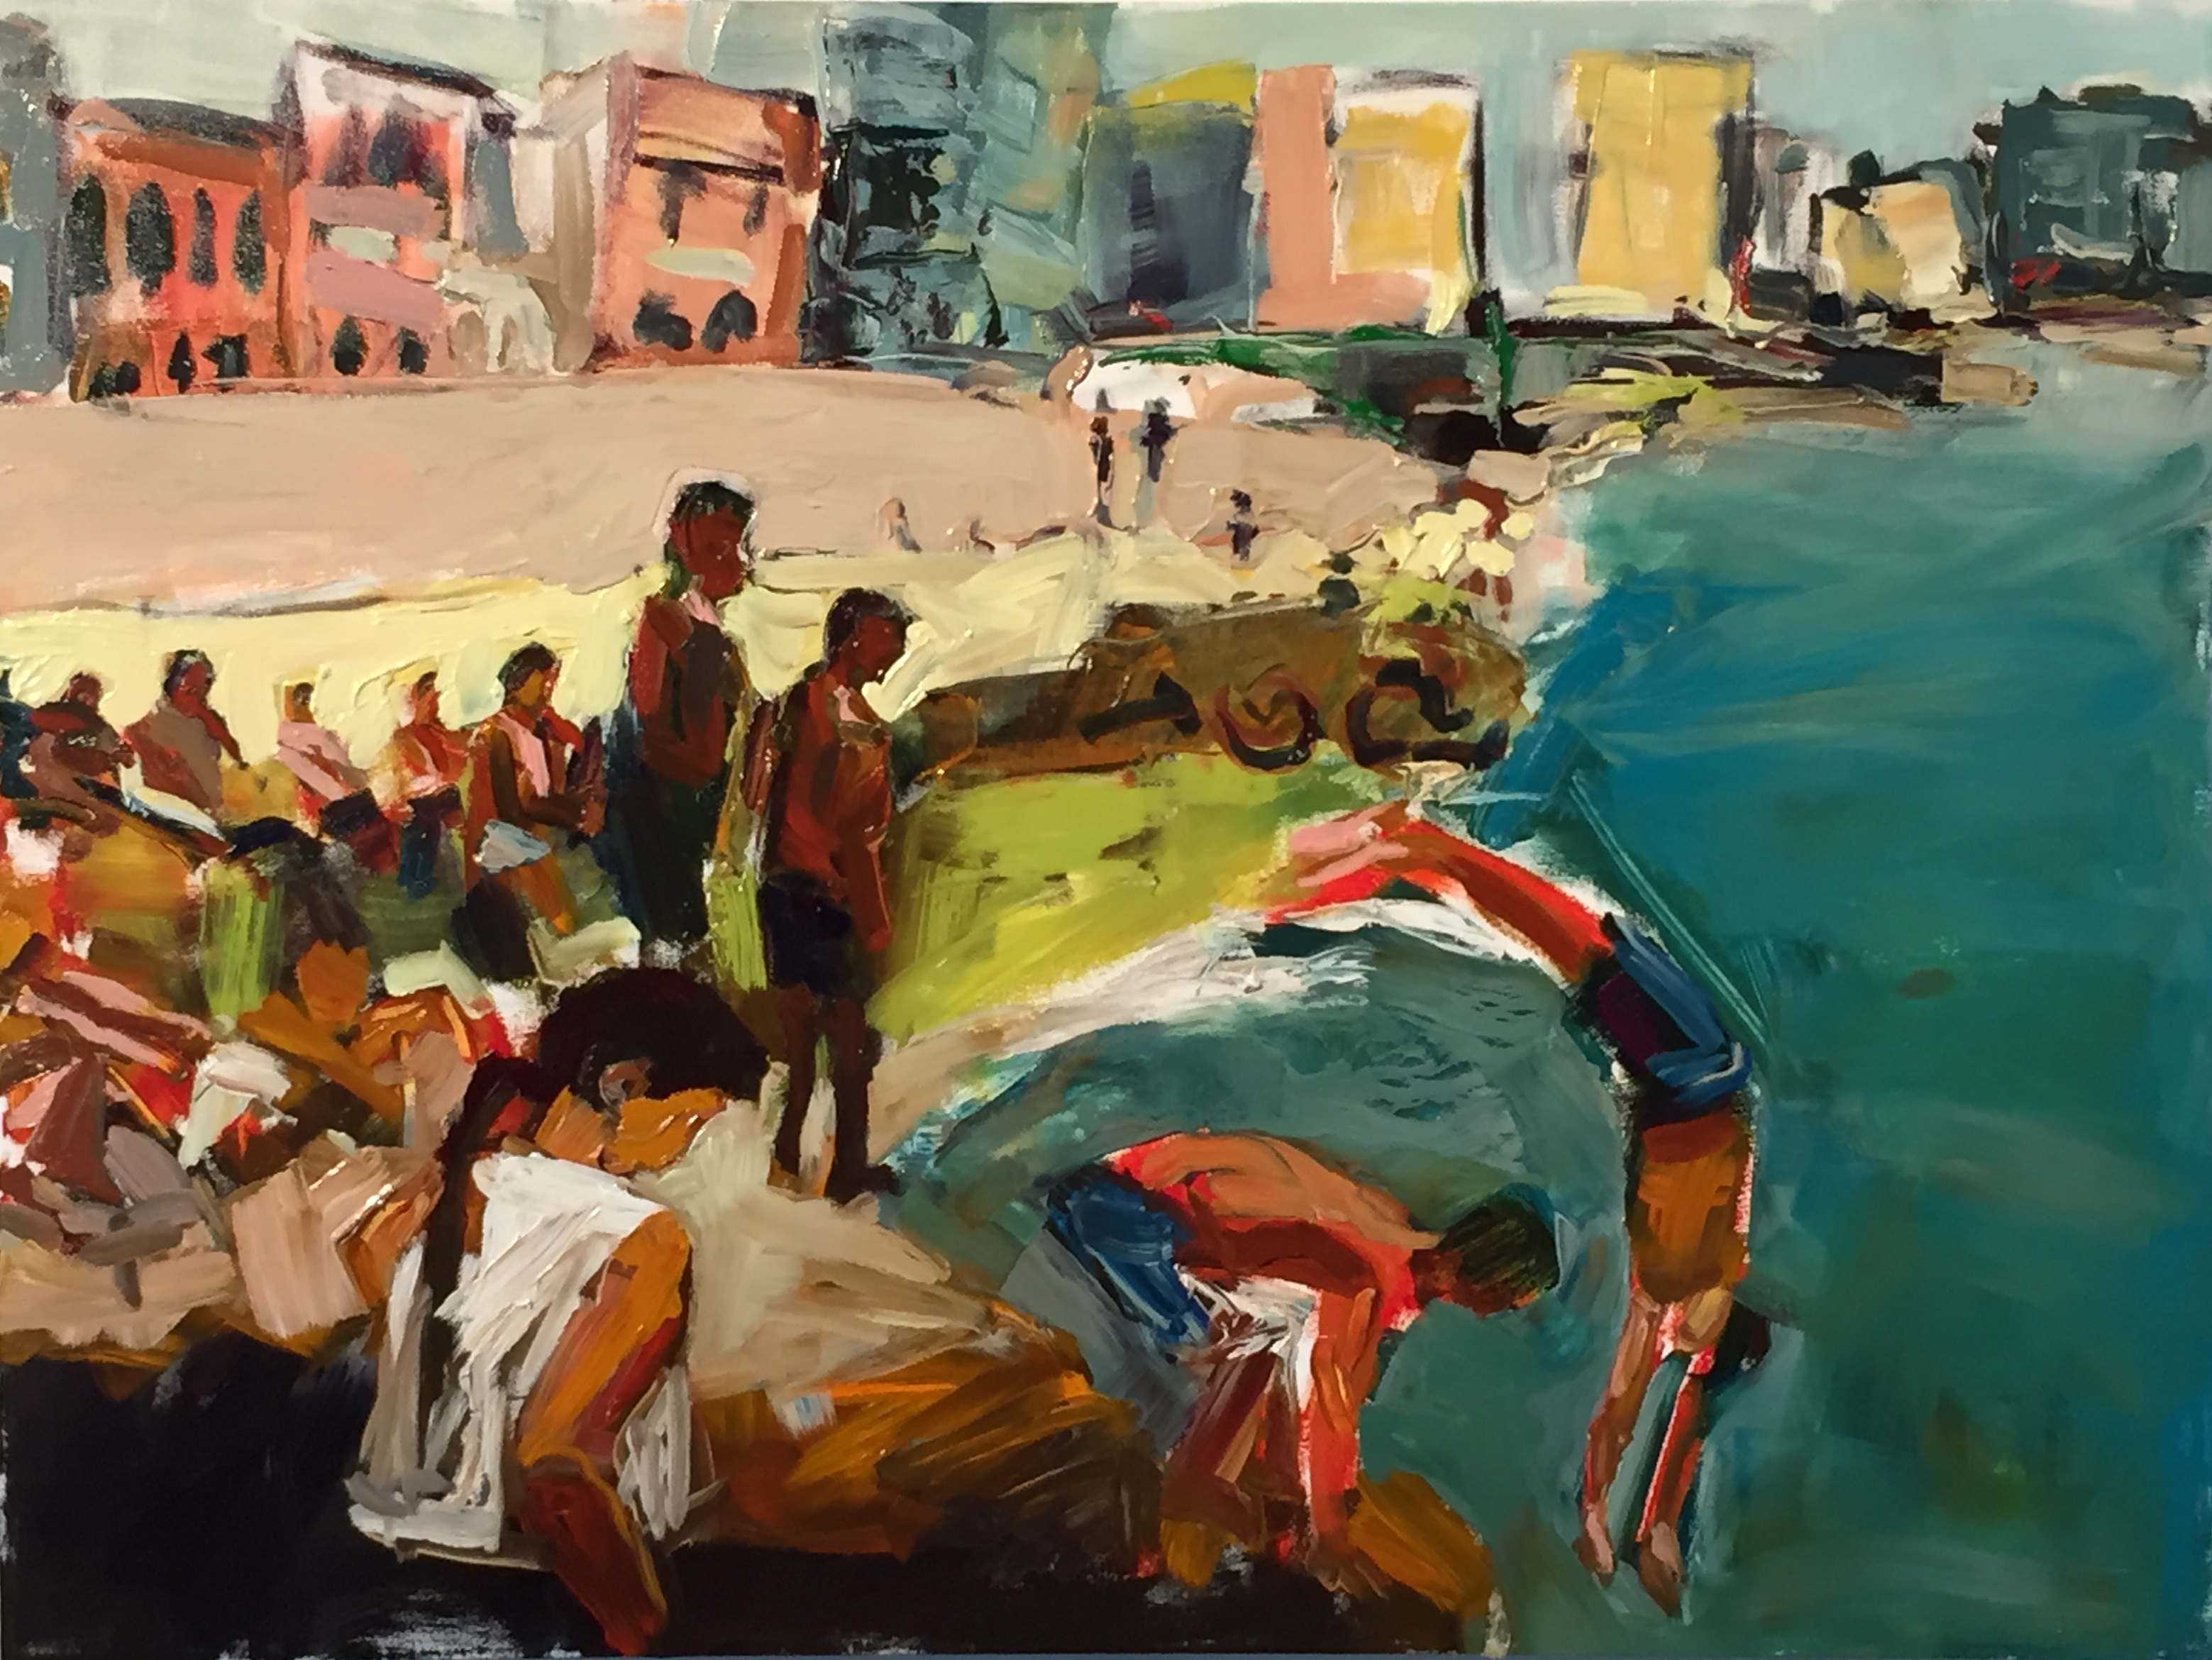 La Vida Cuba series- Nadando en el Malecon_36x48_oil on canvas_anaguzman